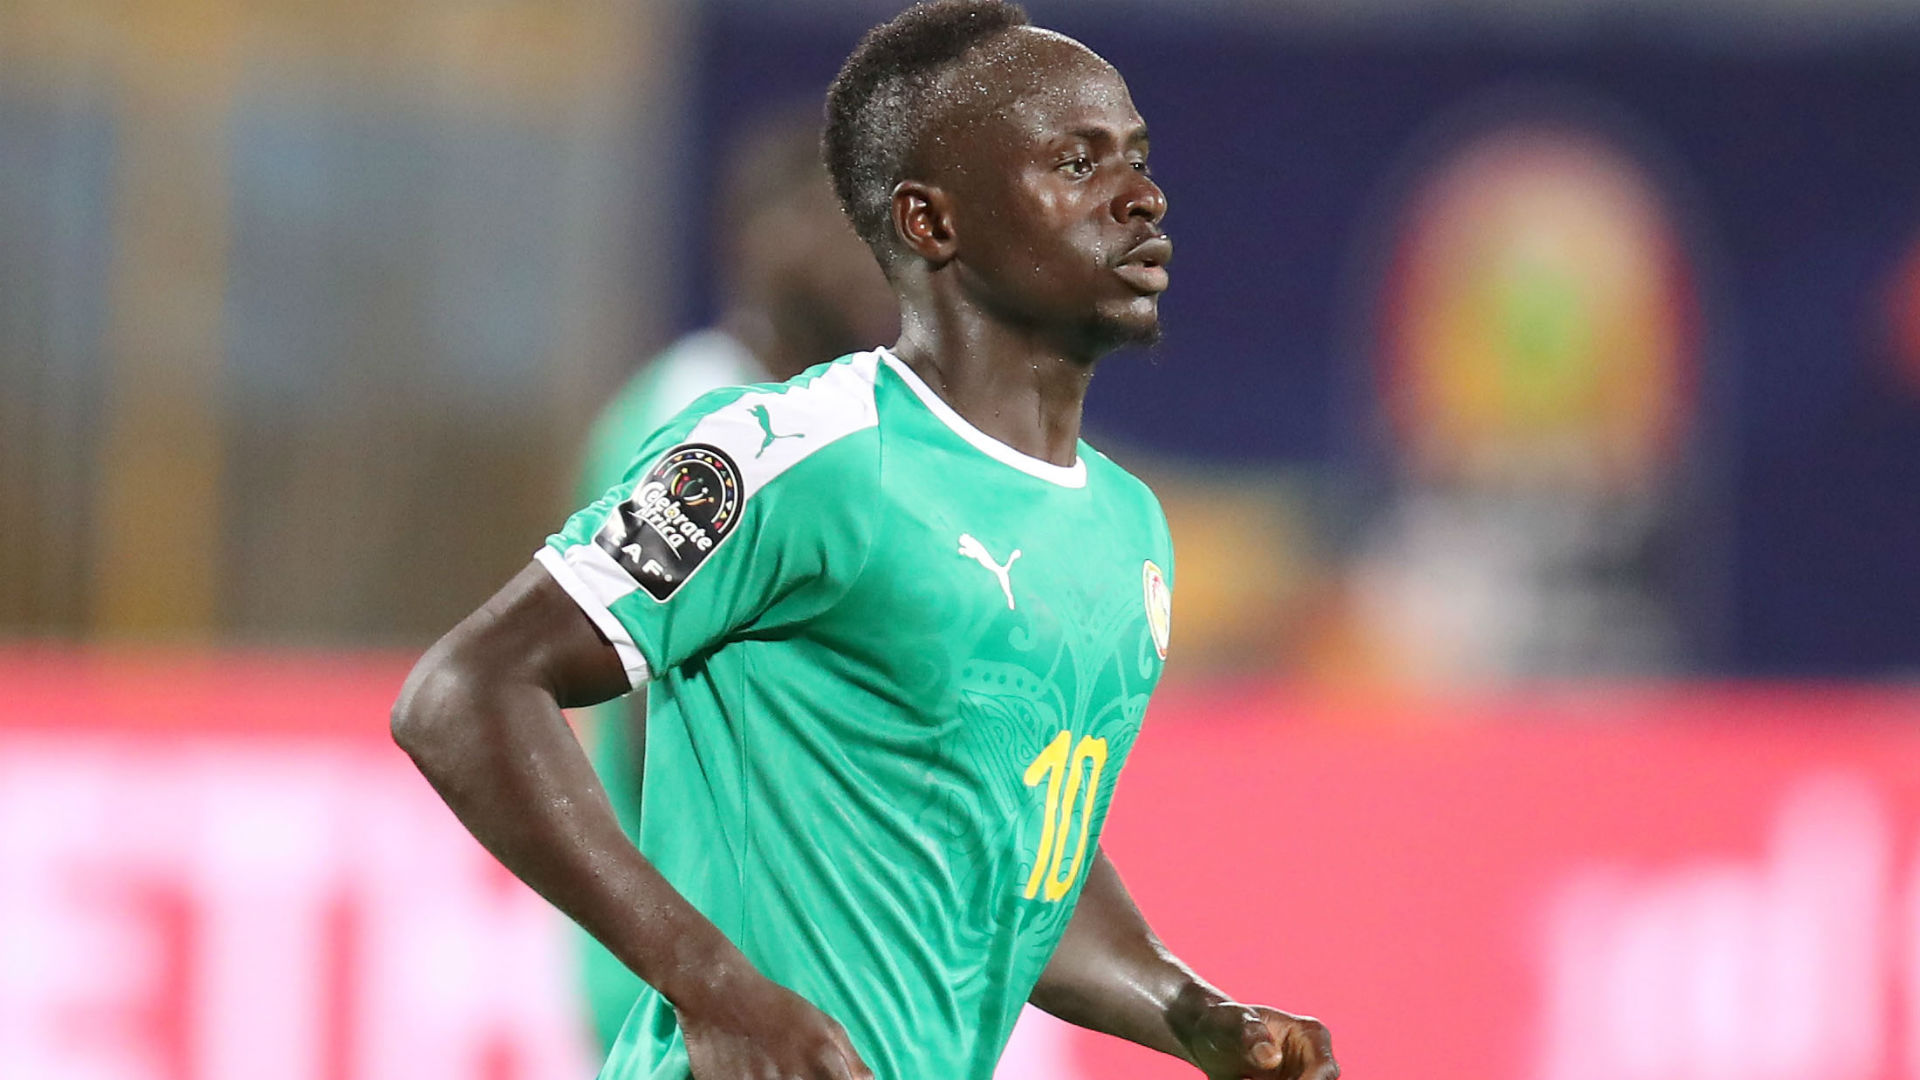 Afcon 2019: Robert Kidiaba tips strong Senegal to lift title in Egypt